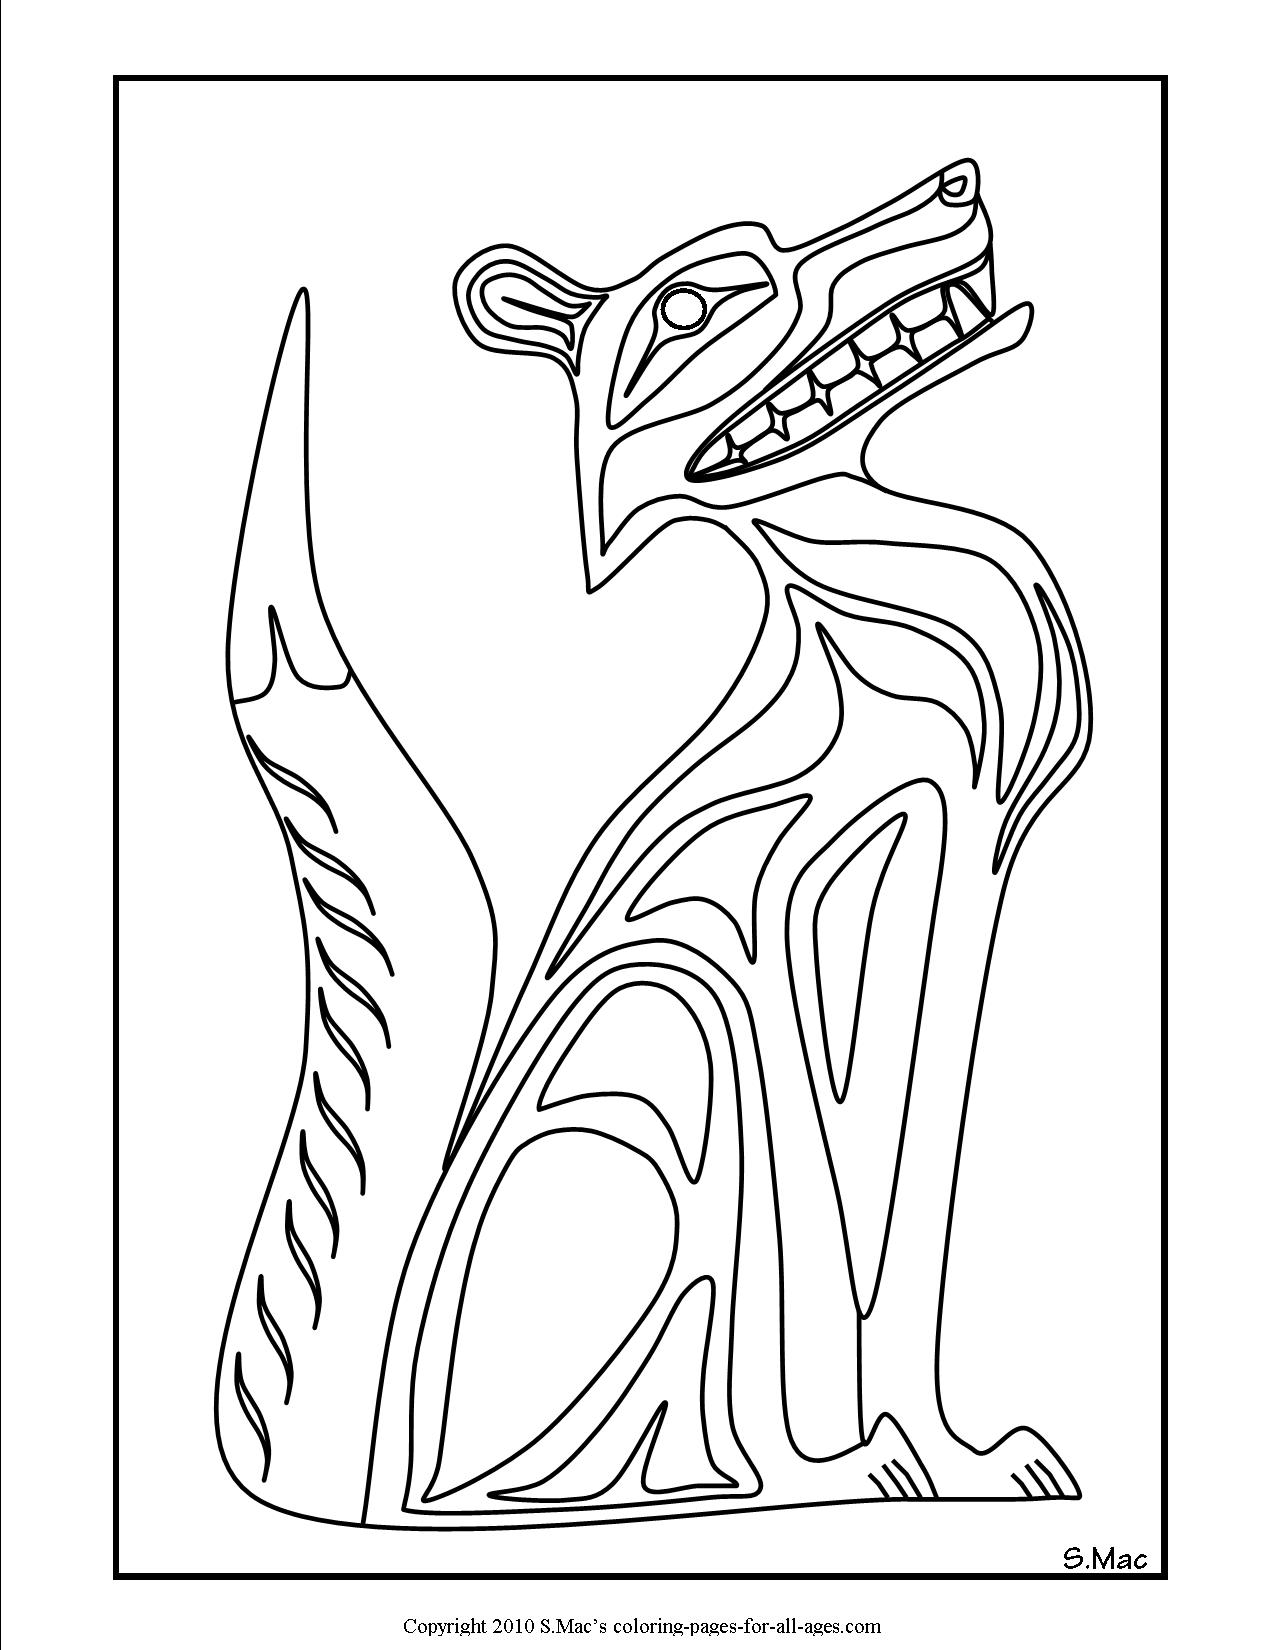 native coloring pages printable native american coloring pages to download and print for free pages printable native coloring